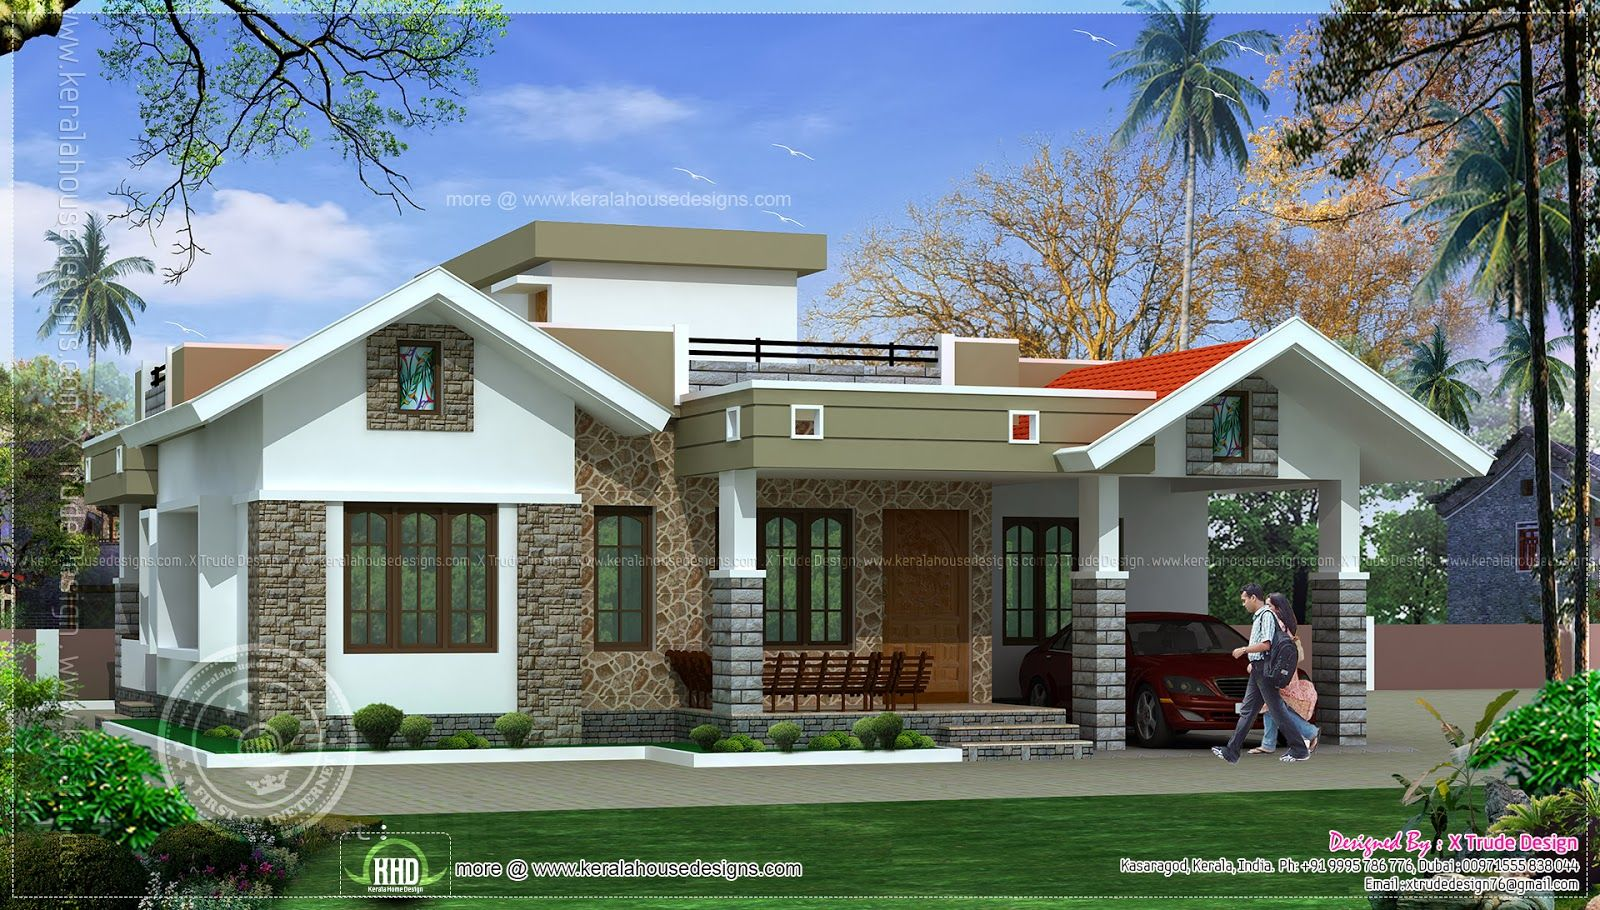 Incroyable One Floor Kerala Style Home Design